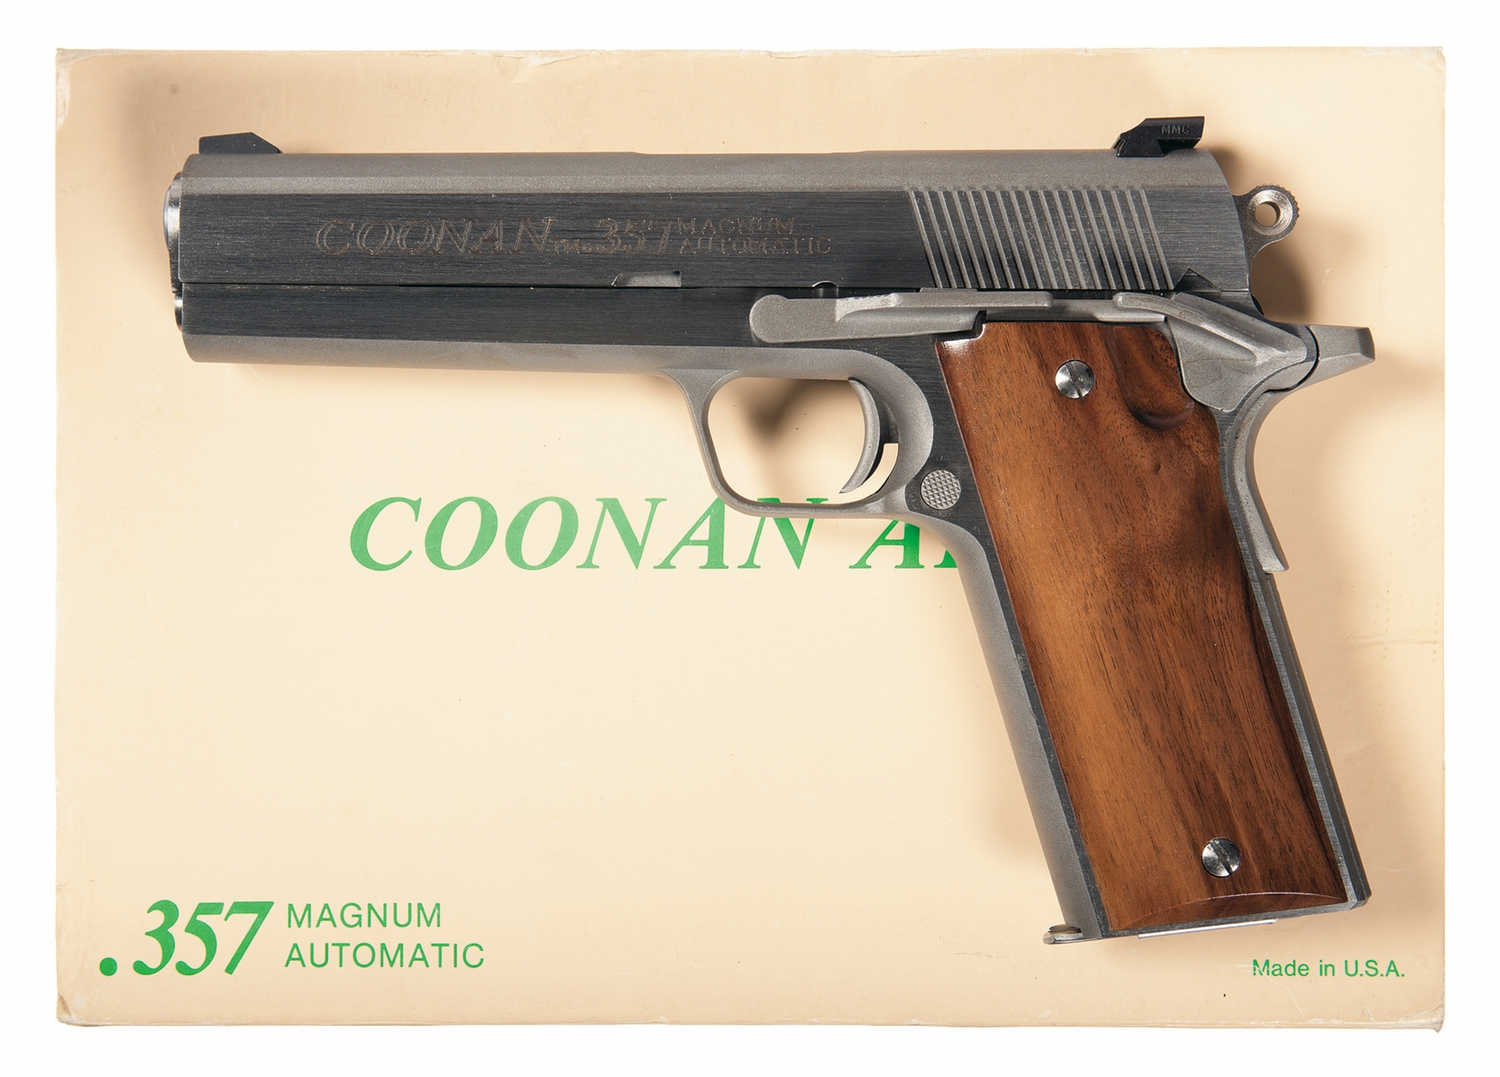 Coonan Arms Company Model B Semi-Automatic Pistol with Box